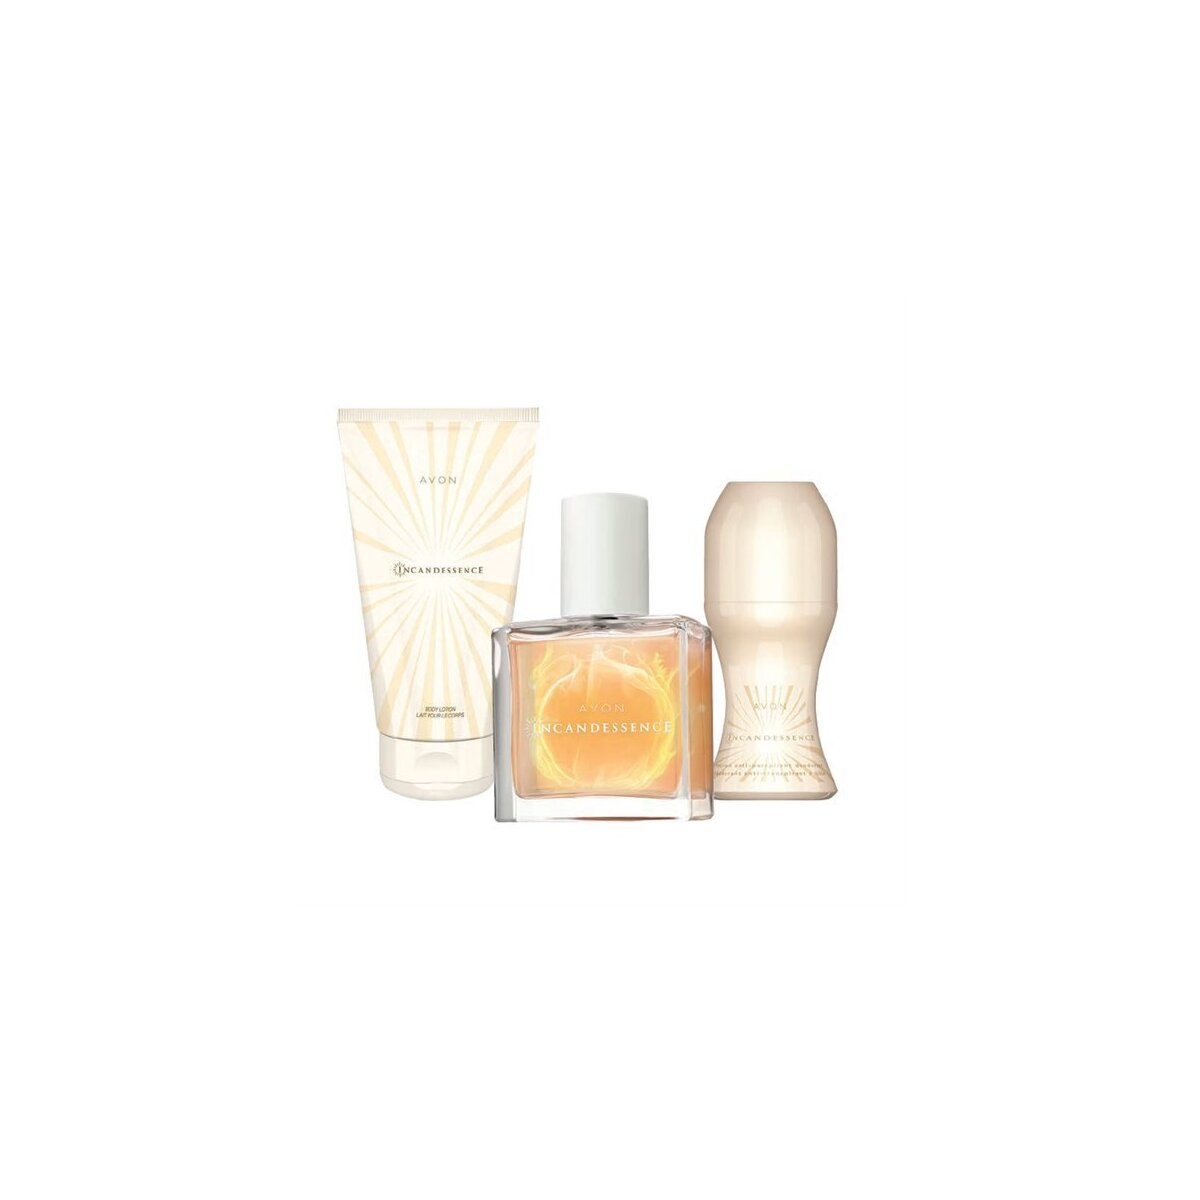 Avon Incandessence Edp 30 Ml + Roll On + Losyon Set